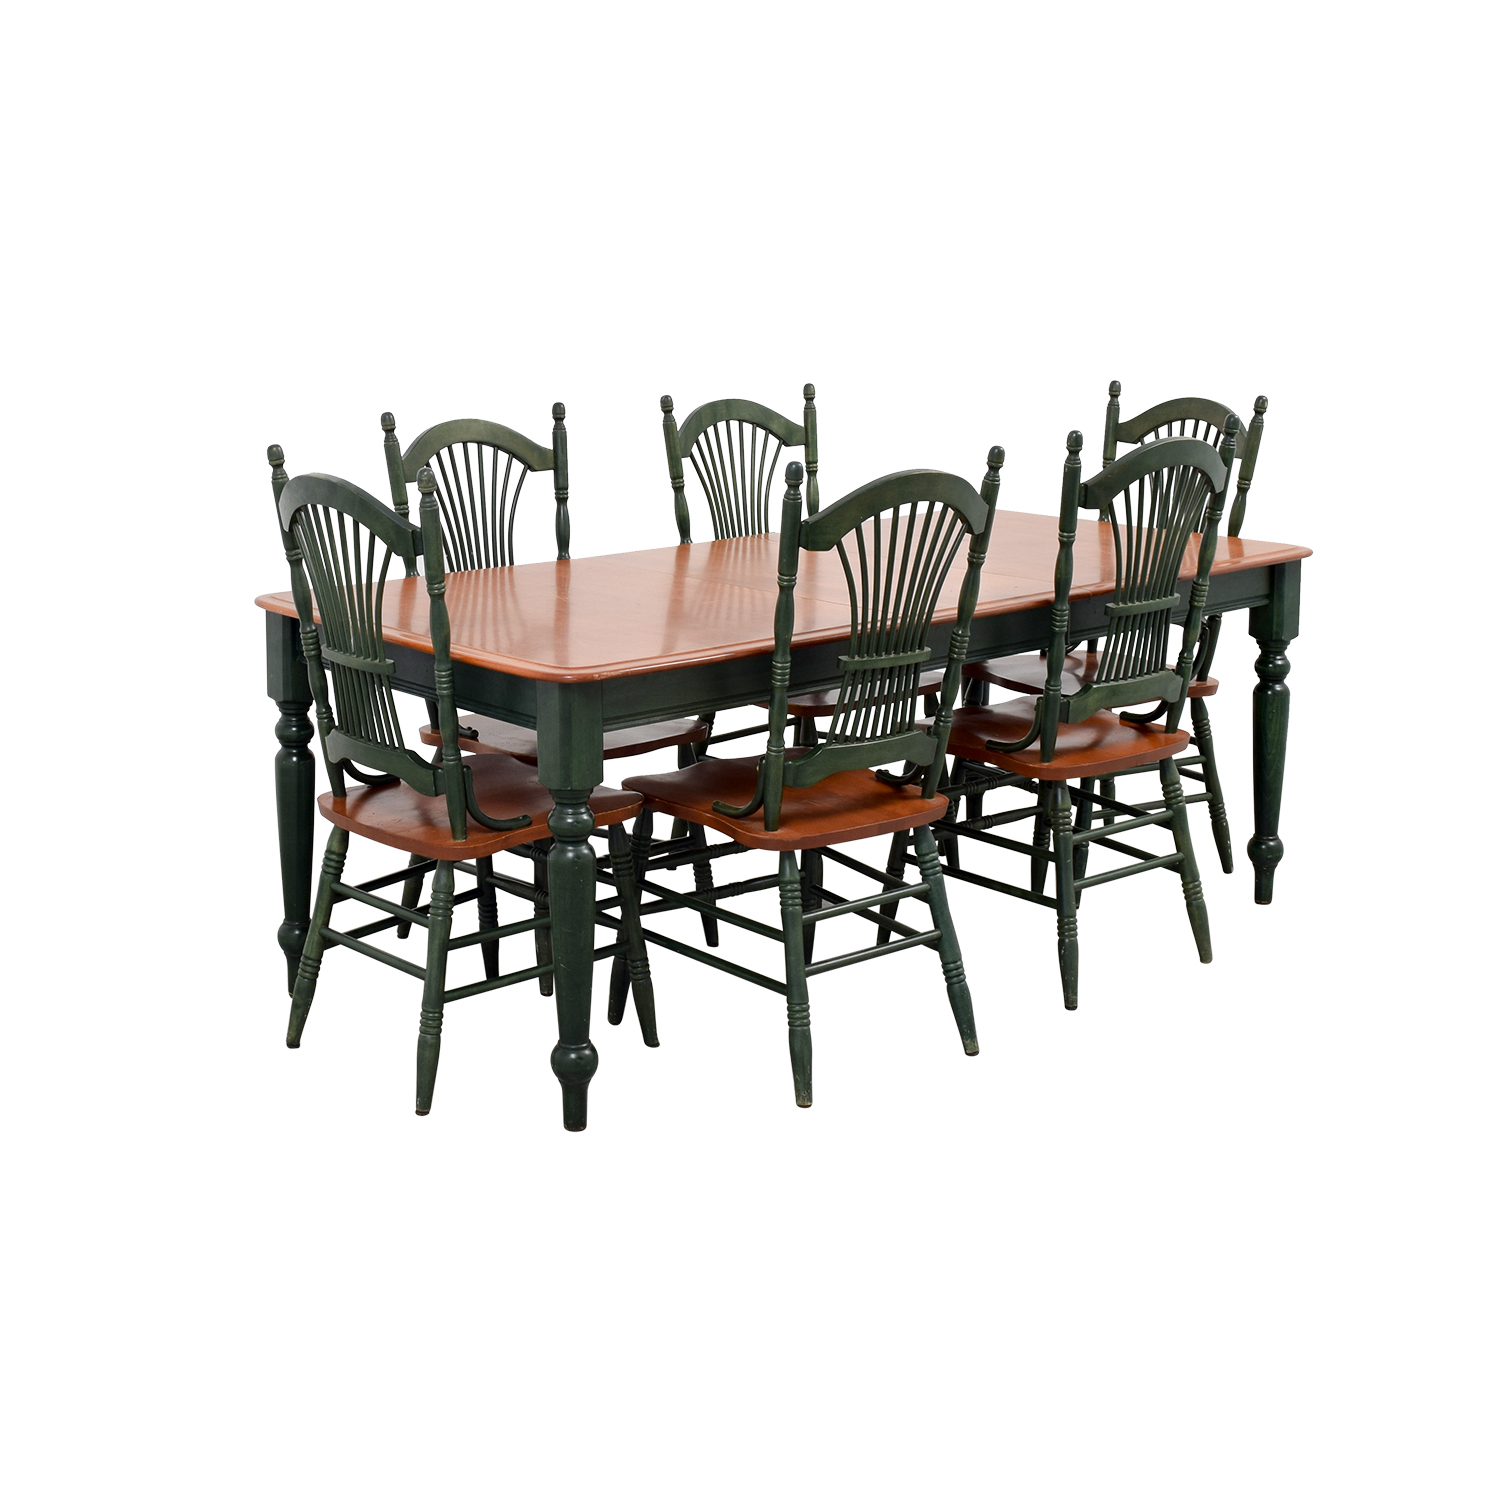 shop  Dining Table with Extension Leaf and Green Chairs online